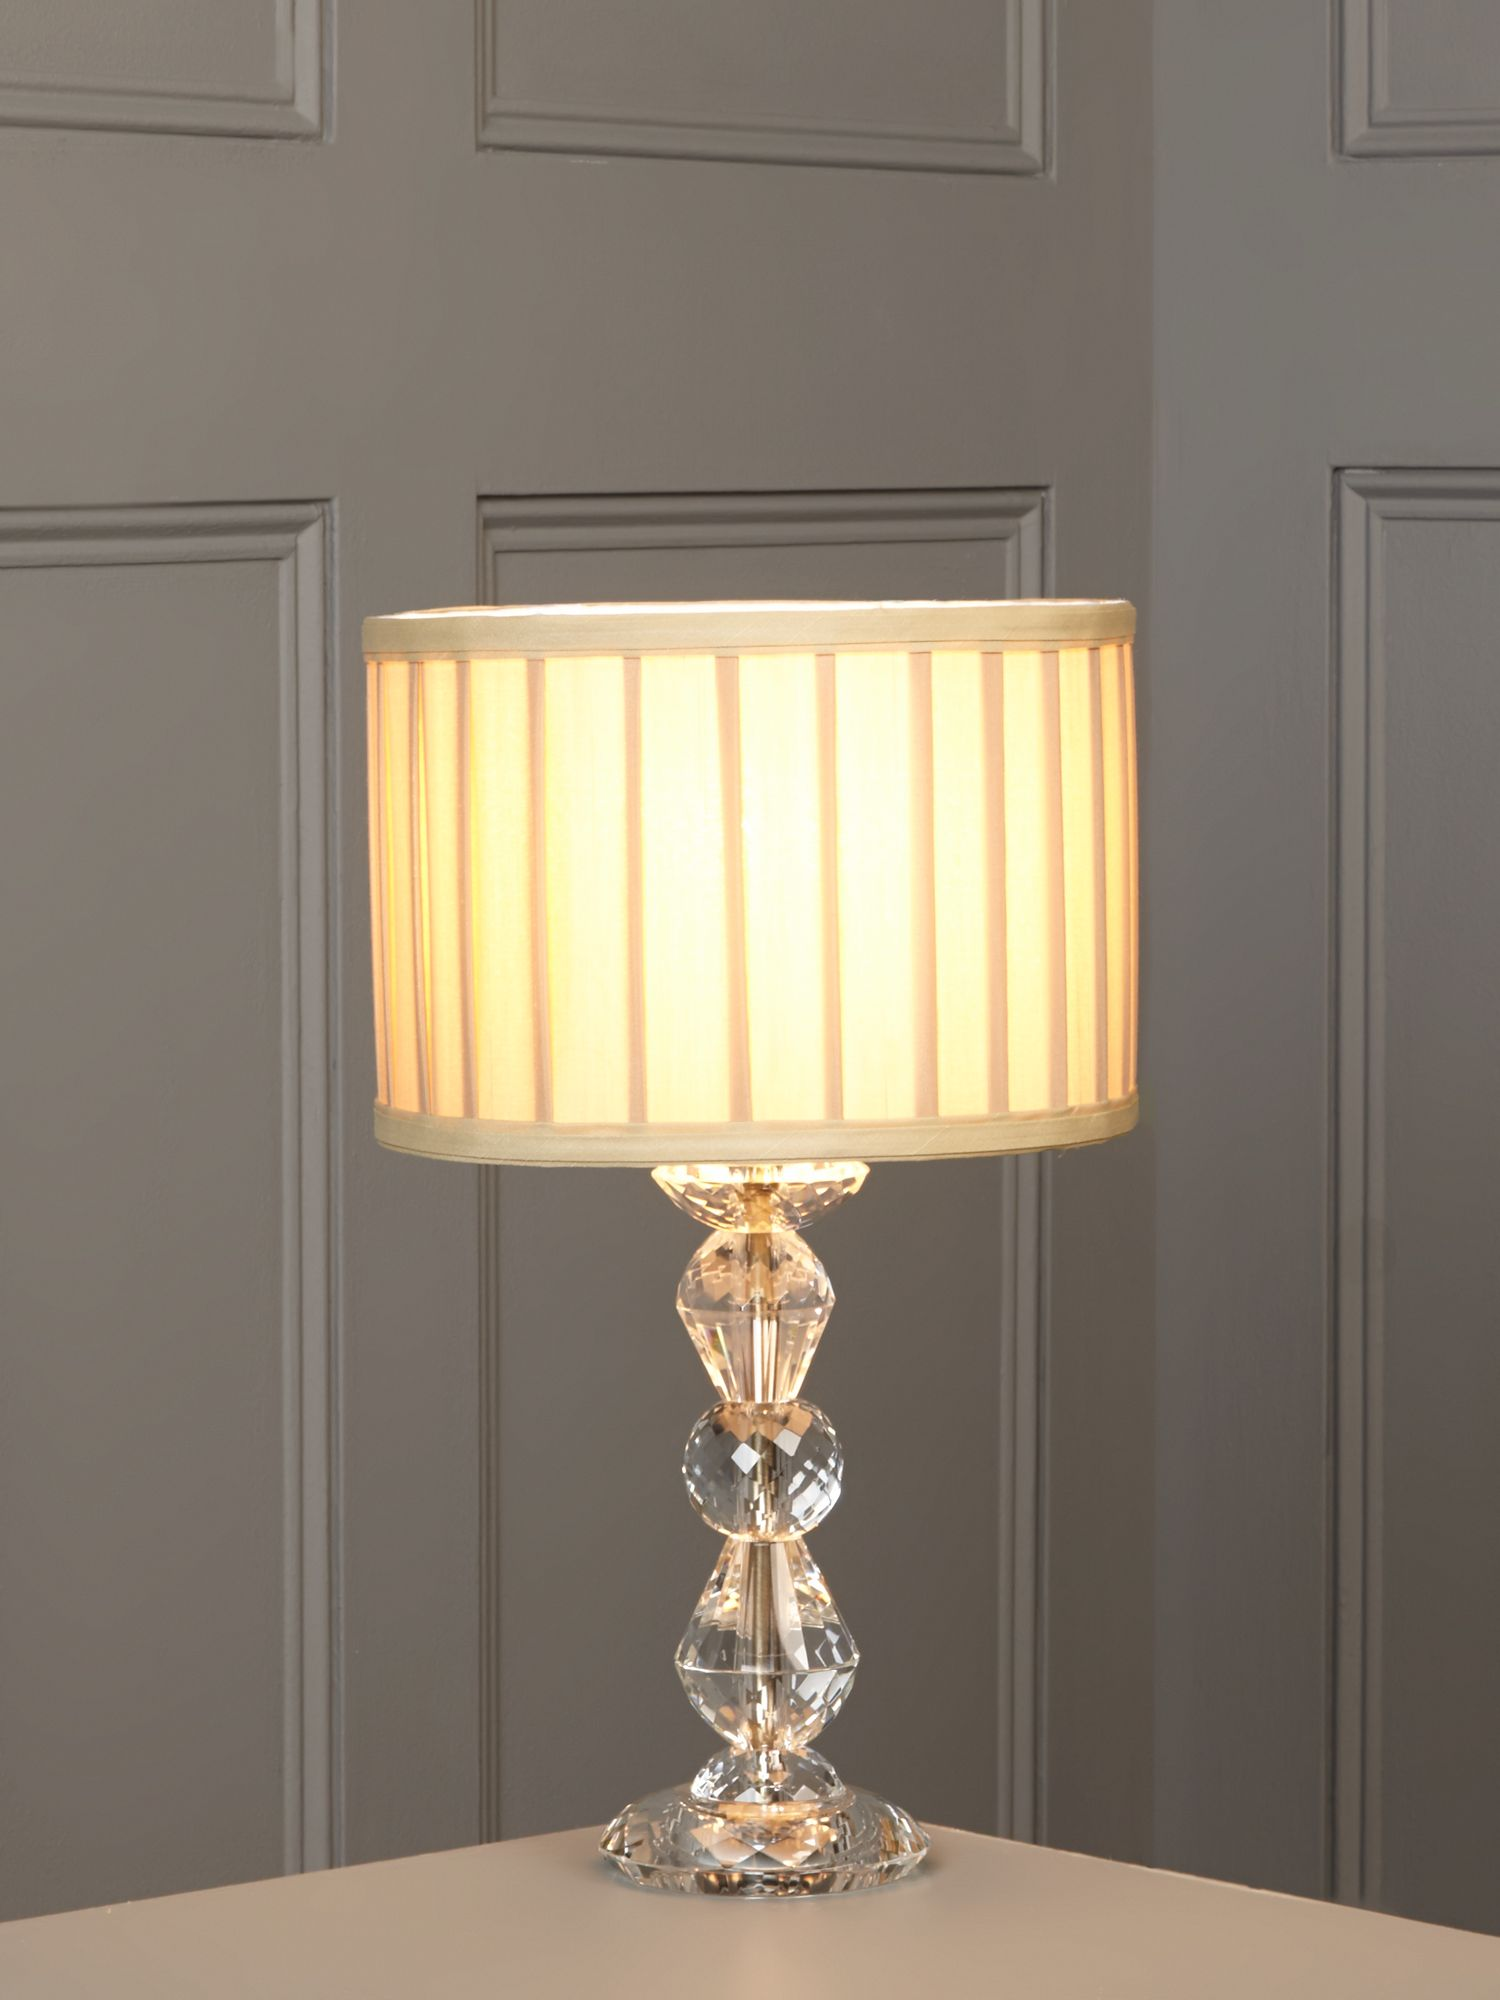 Clarence crystal table lamp - champagne